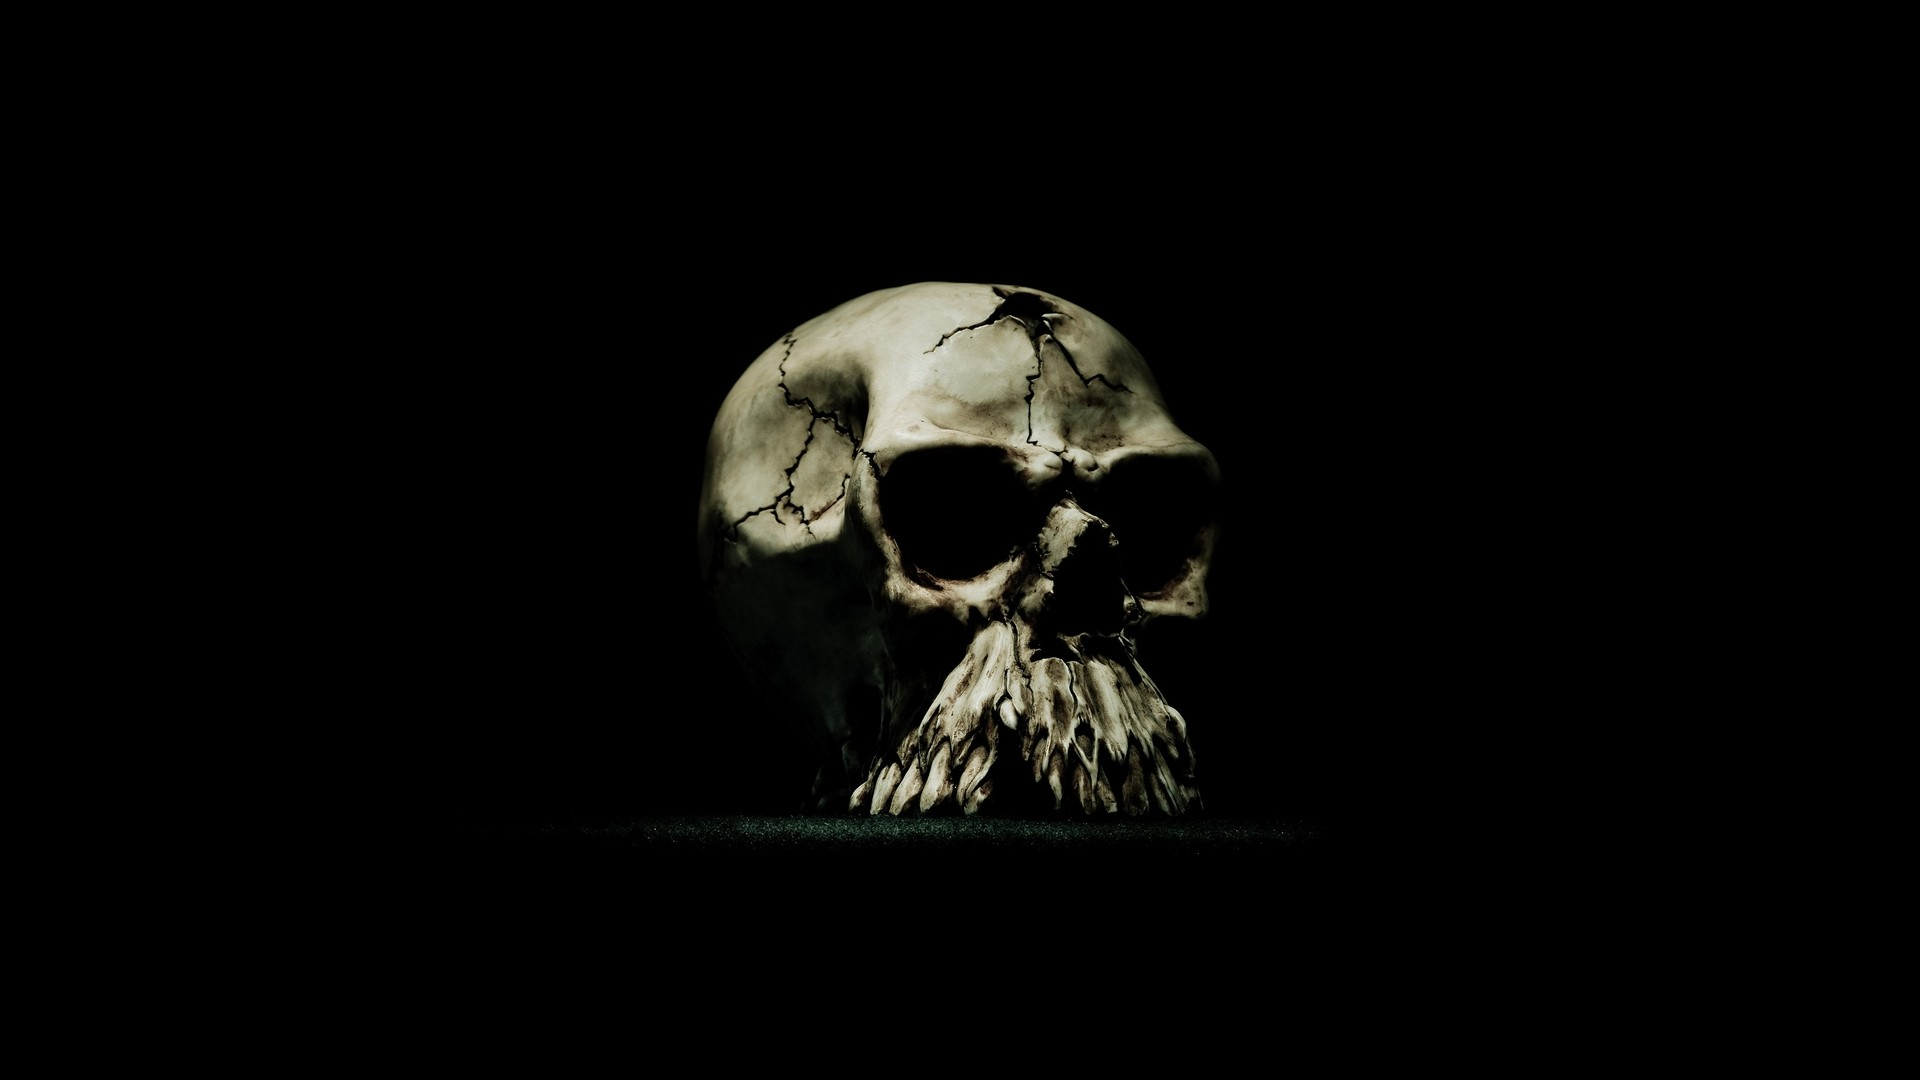 Awsome Cute Skull Wallpapers Skulls Wallpaper 183 ① Download Free Awesome High Resolution